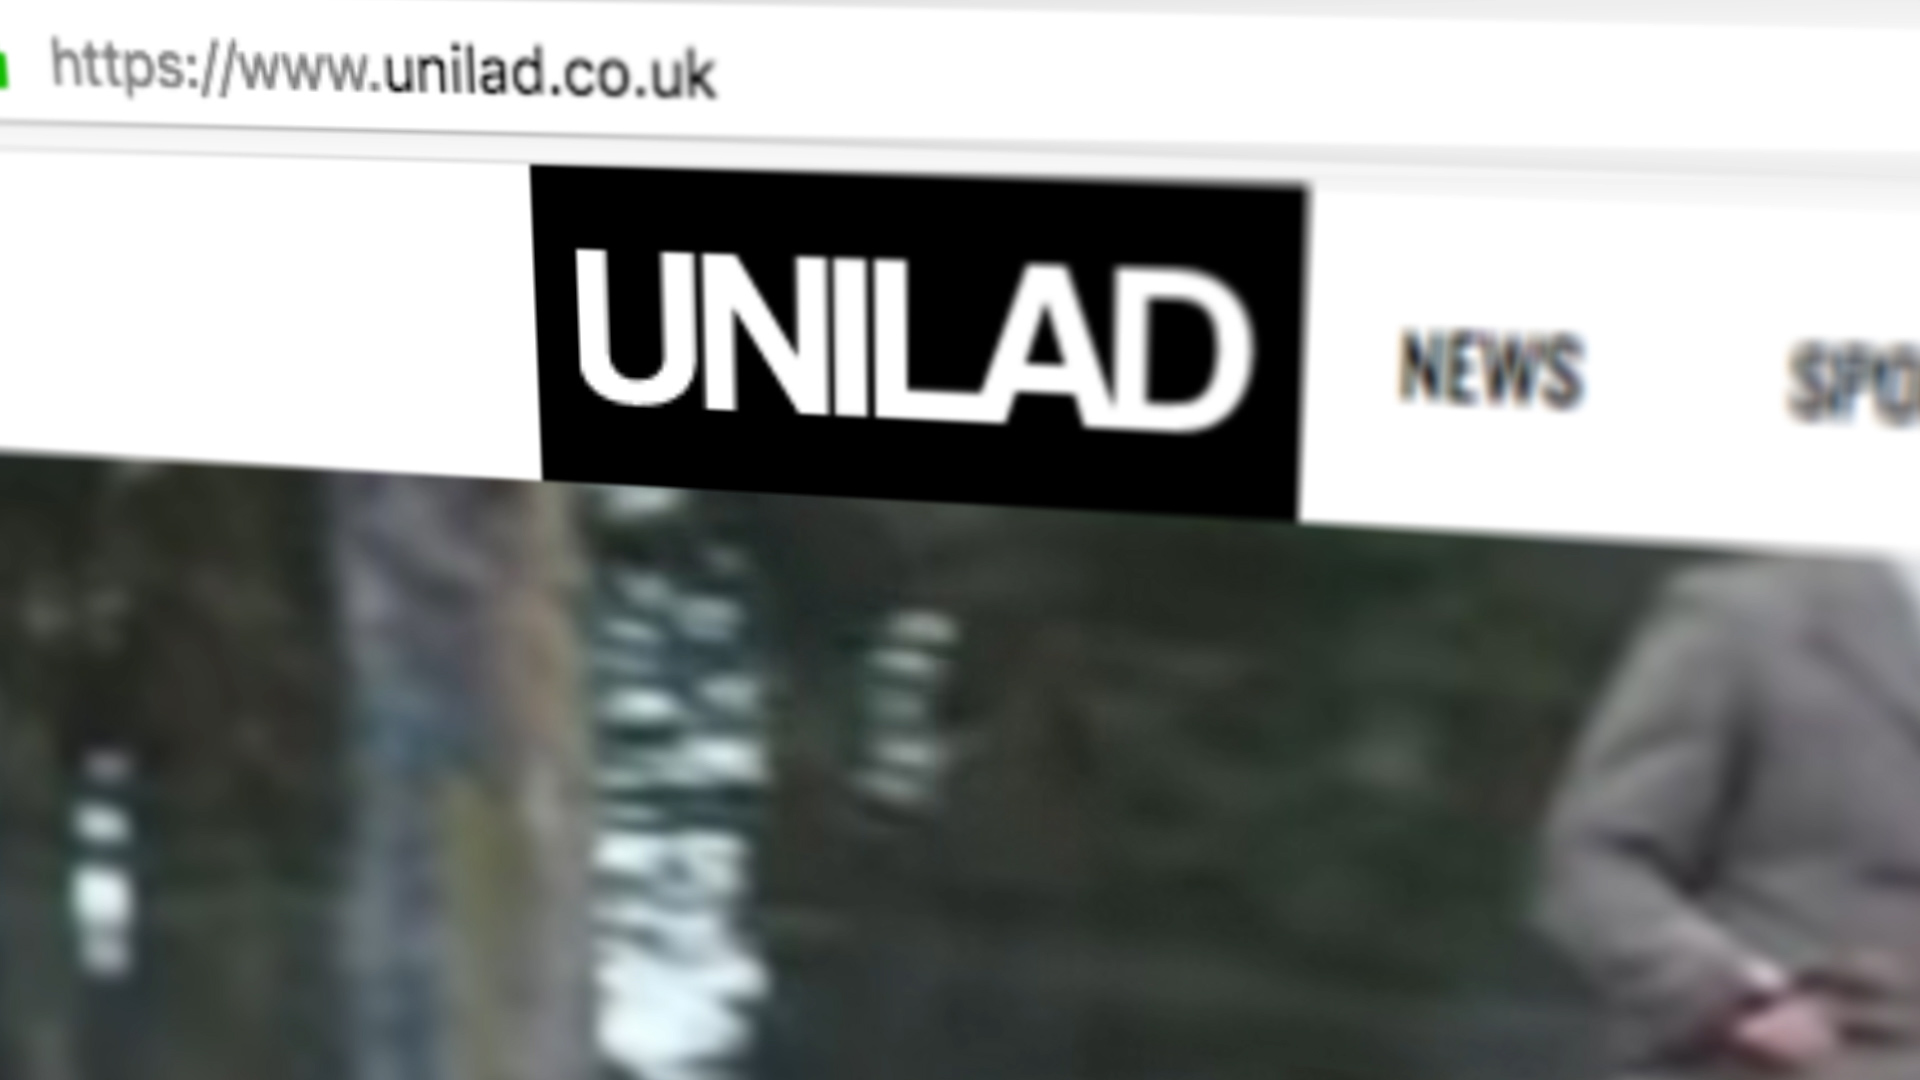 Image of UNILAD homepage on website featuring logo